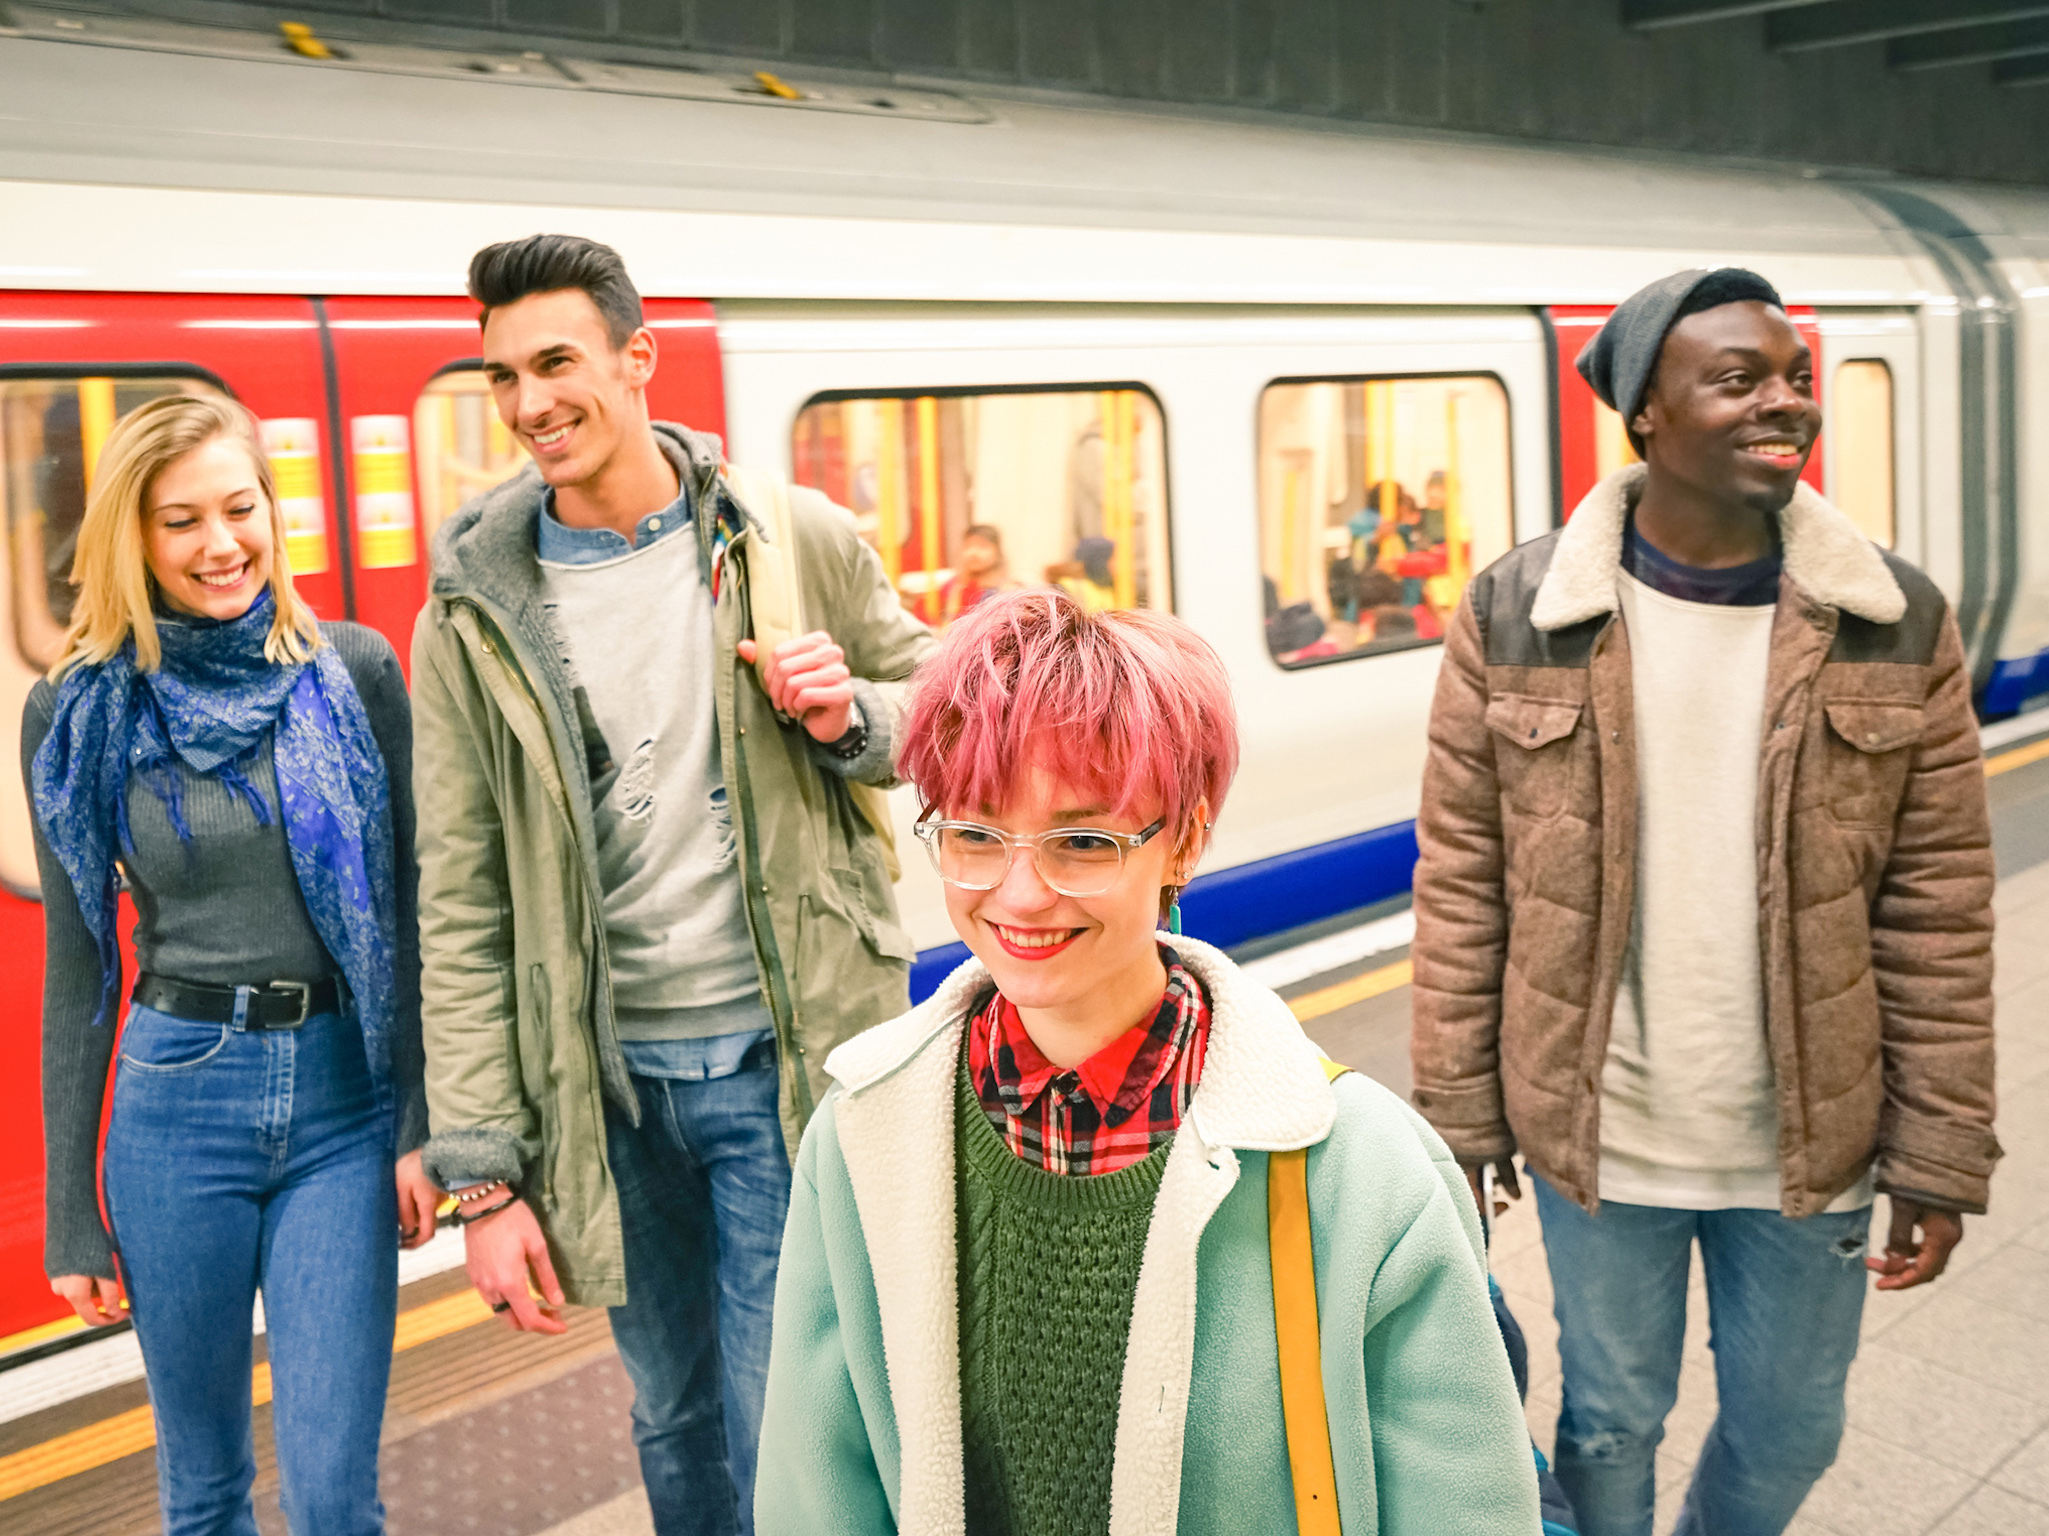 Stock image of people getting off the Tube